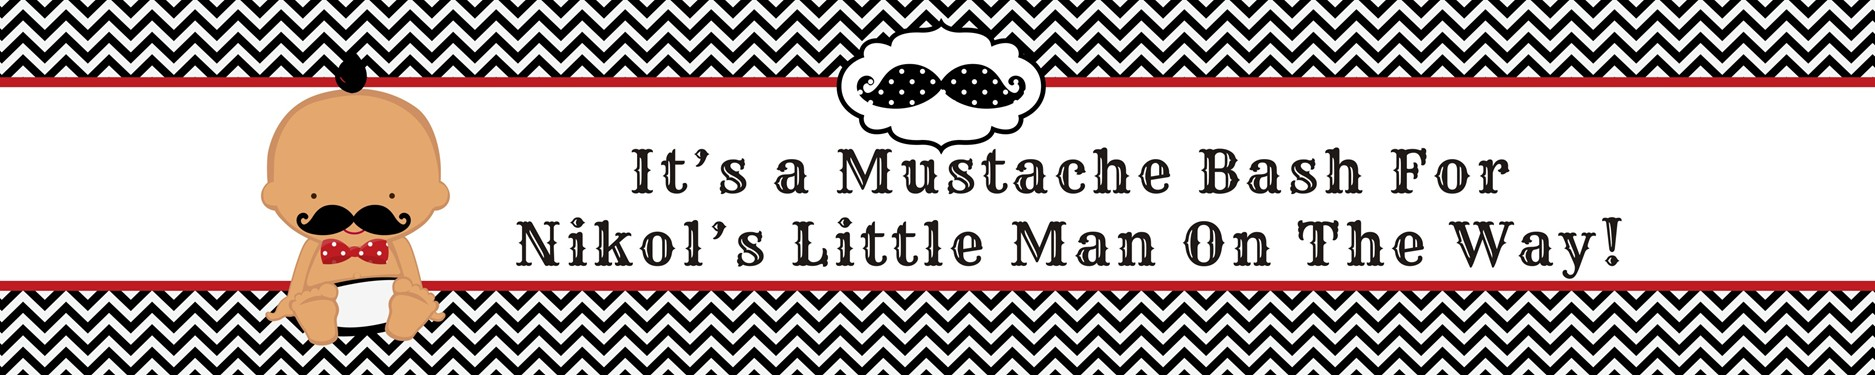 Little Man Mustache Black/Grey - Personalized Baby Shower Banners Caucasian